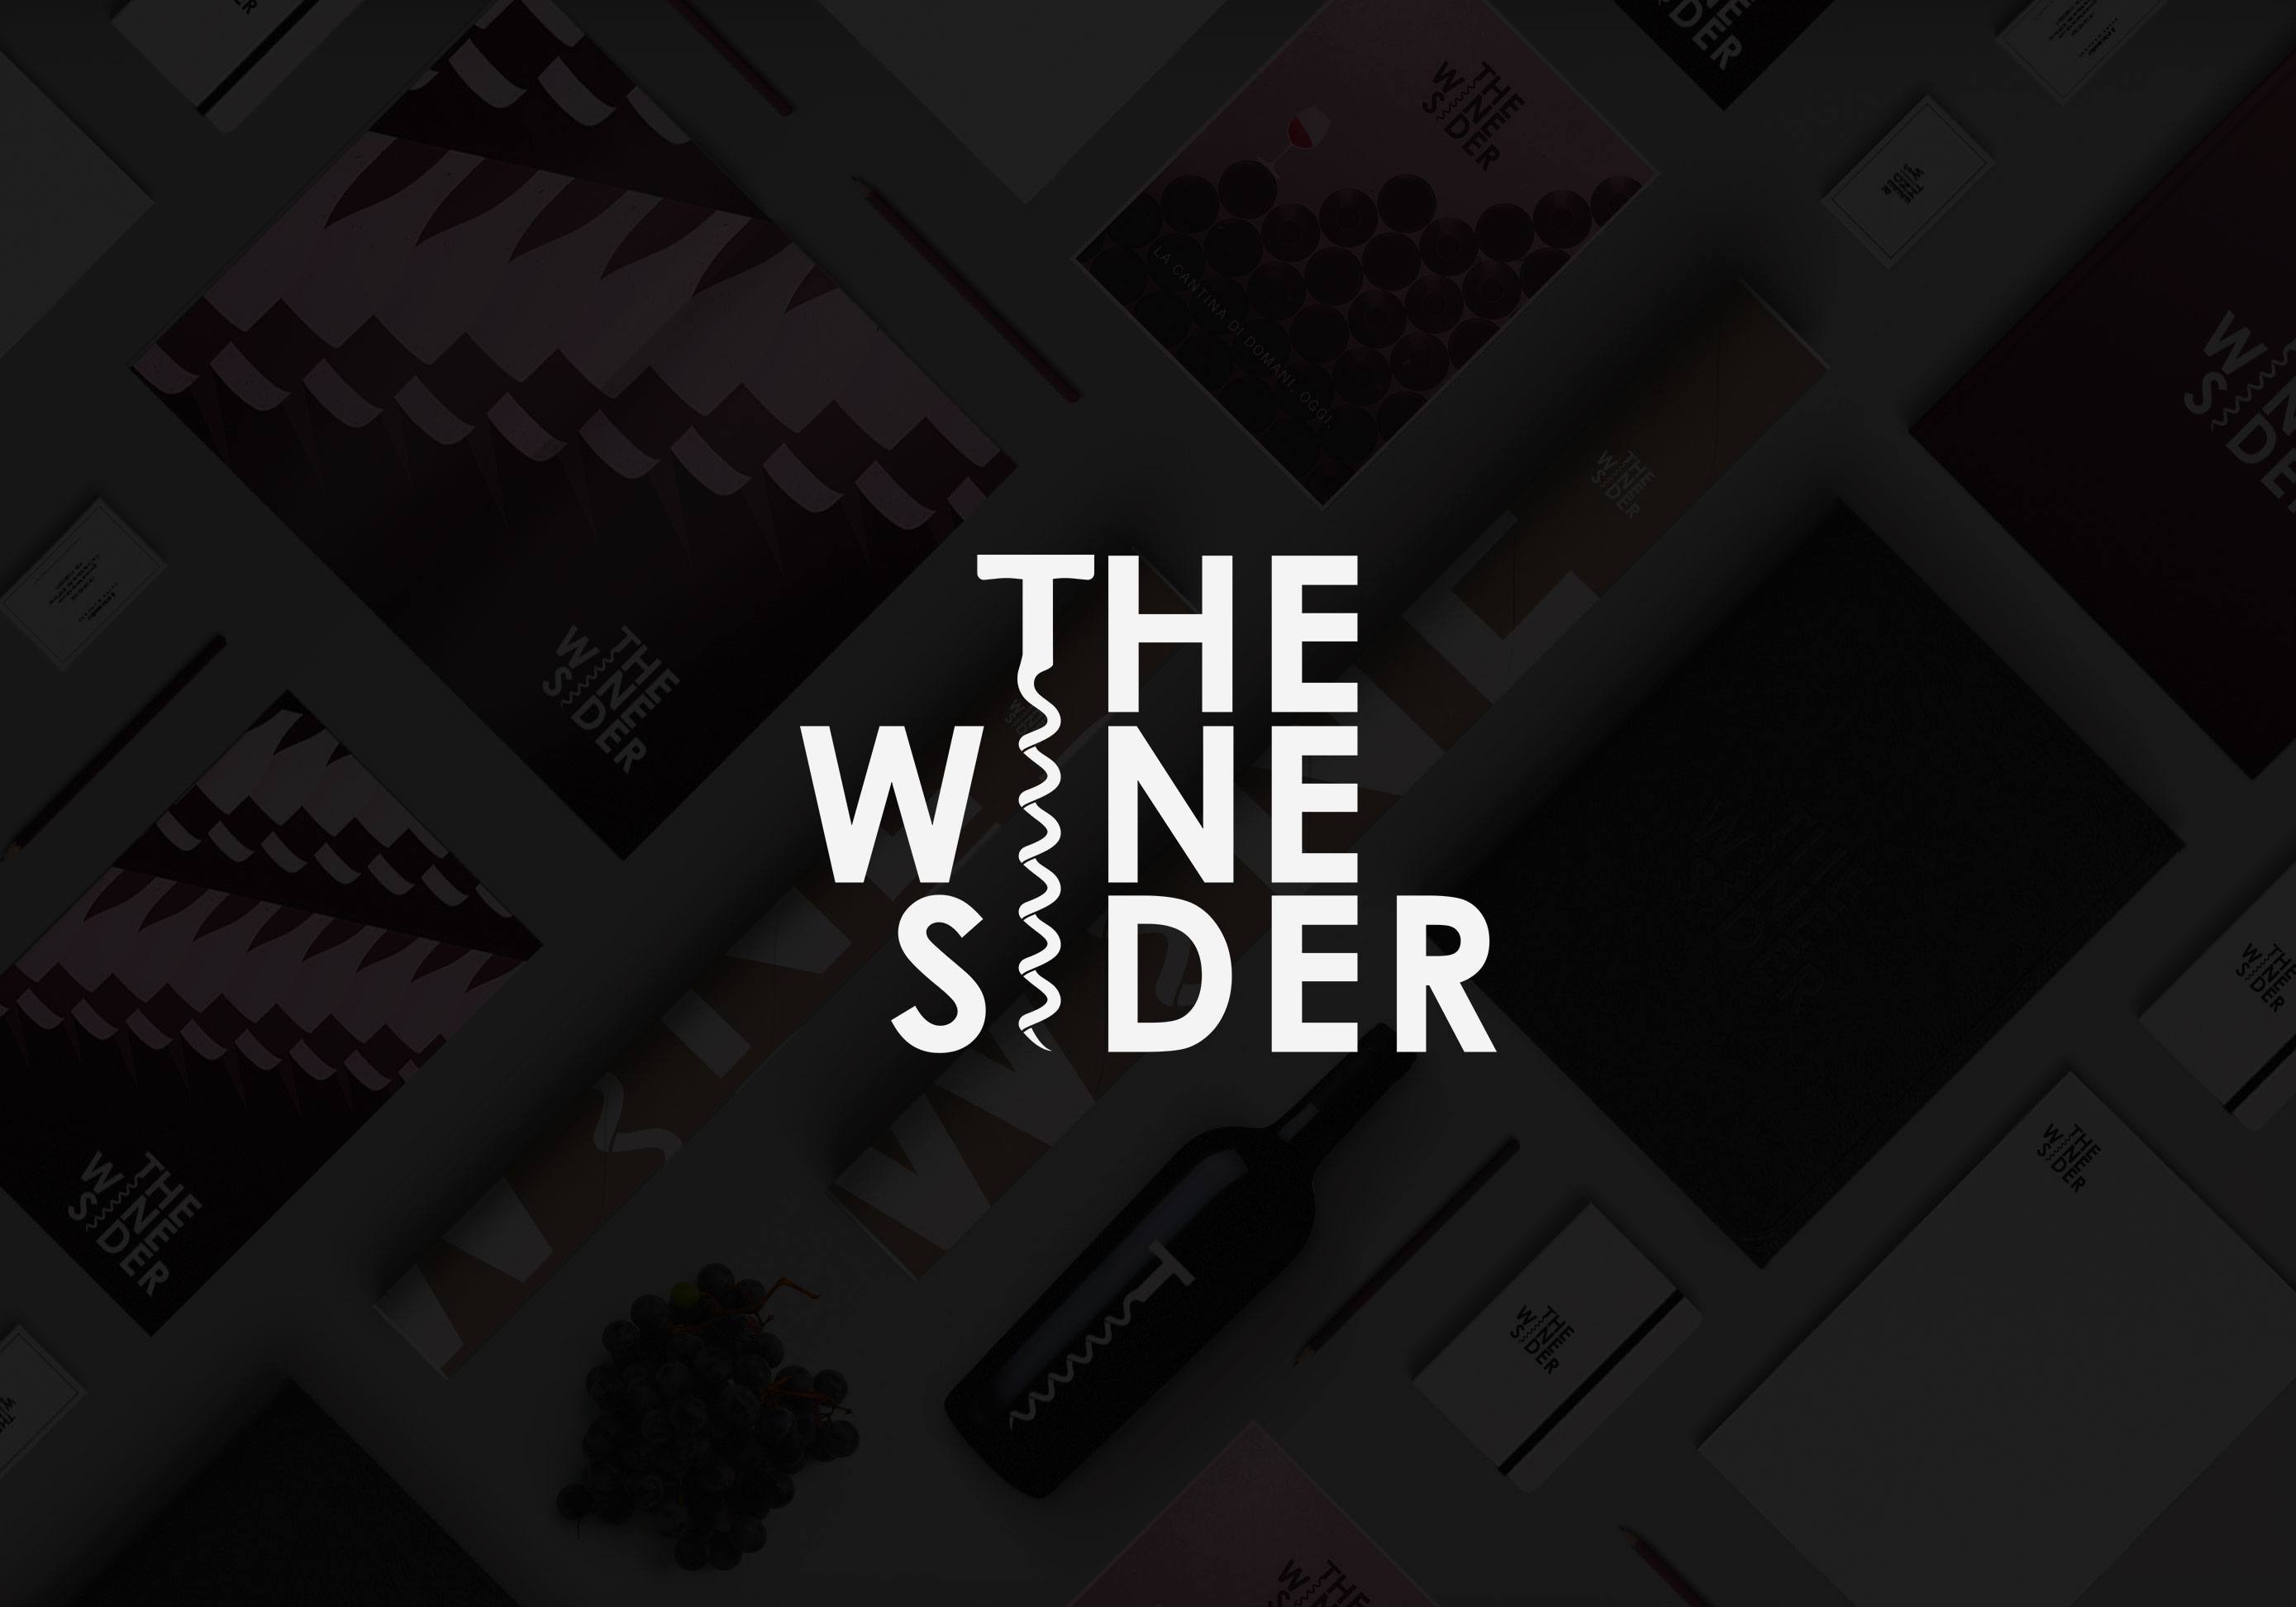 The Wine Sider.